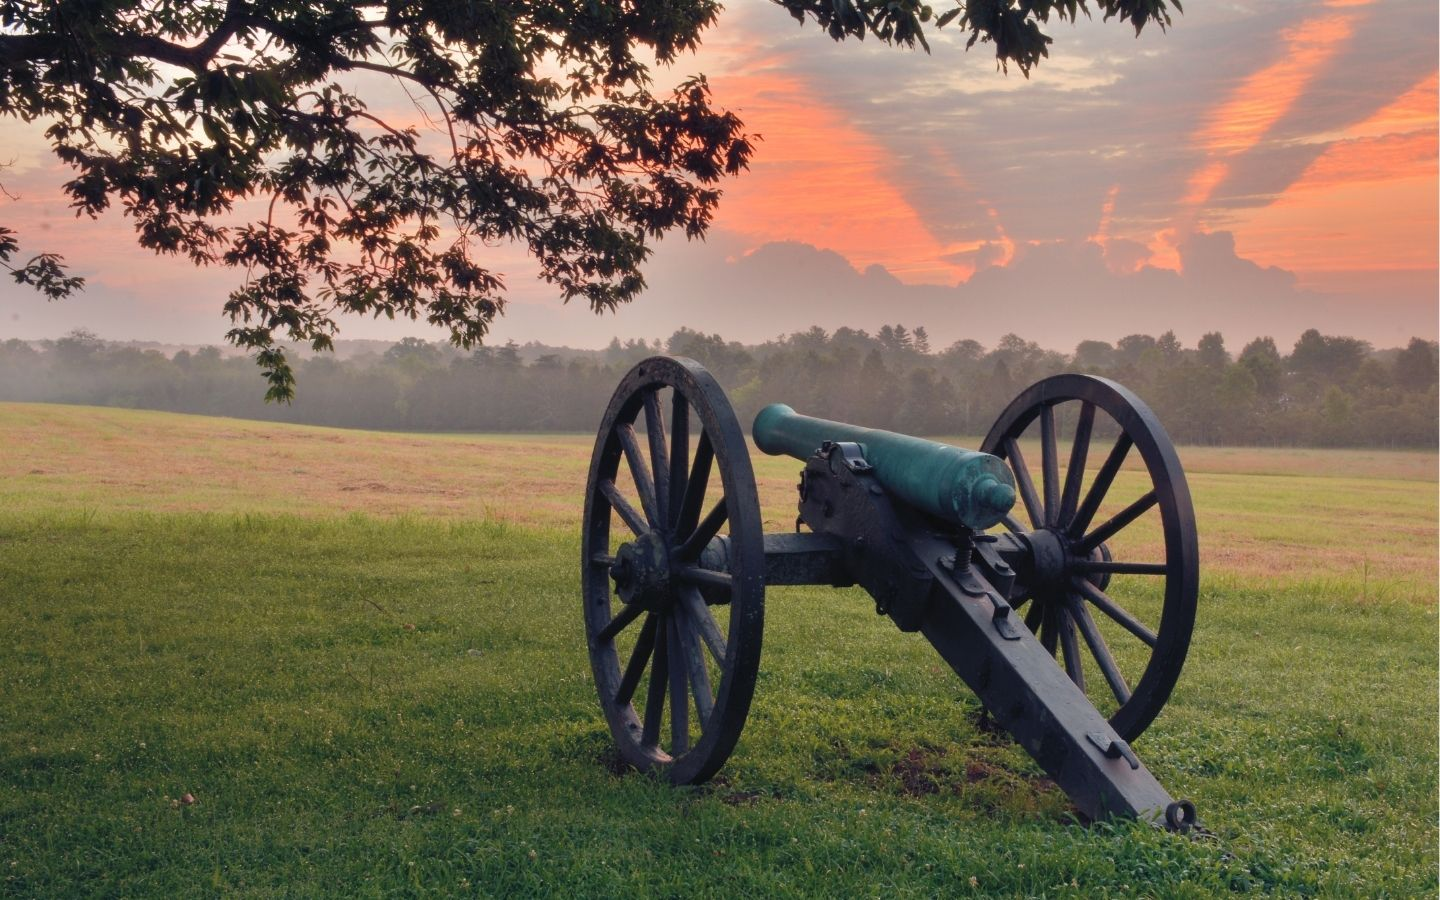 Civil war cannon in the grass amidst a sunset sky